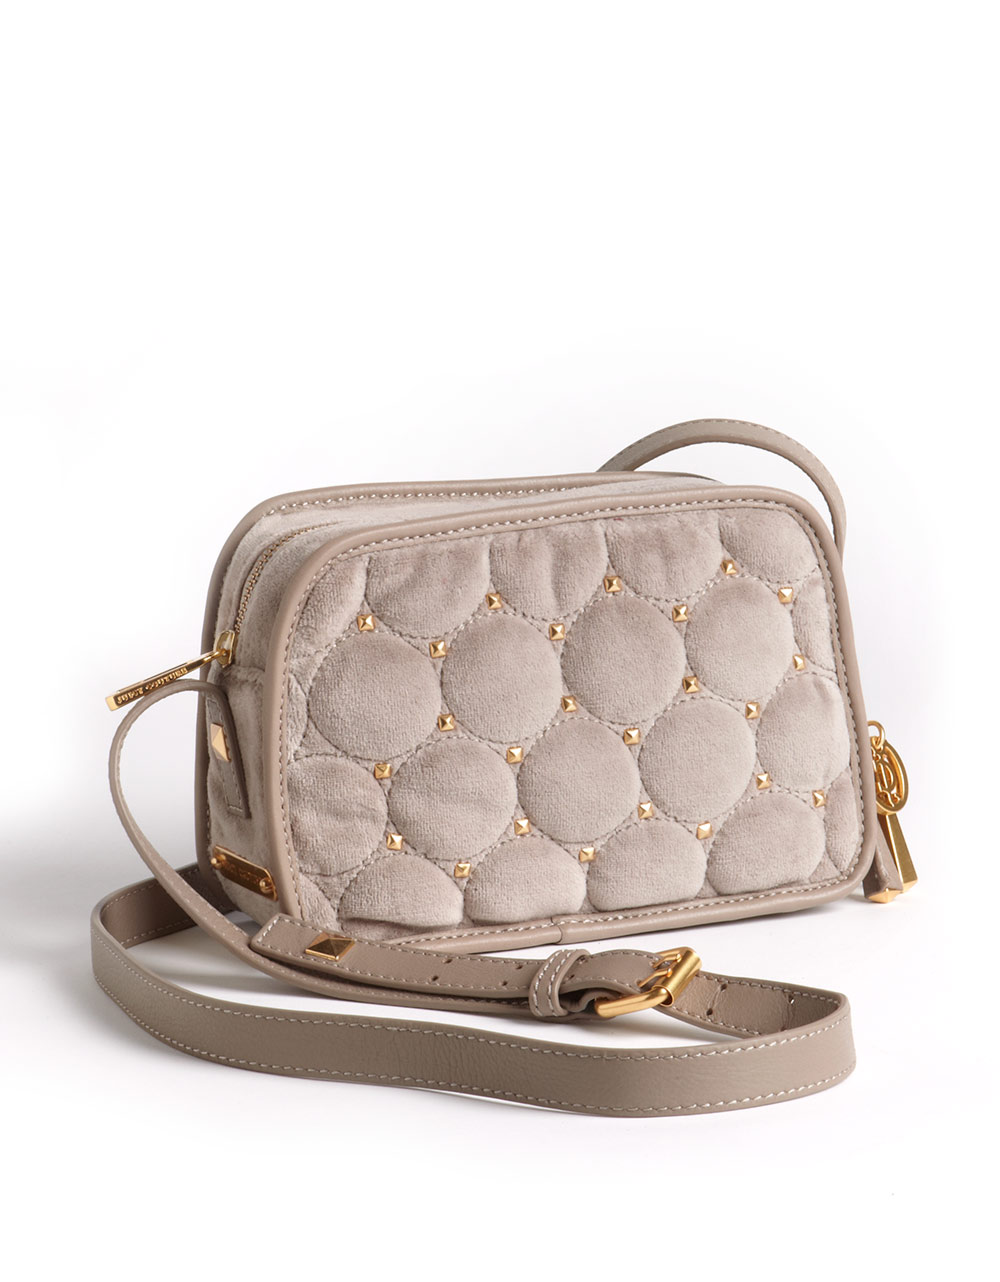 Lyst - Juicy Couture Frannie Quilted Velour Crossbody Bag in Natural dcf2d701c